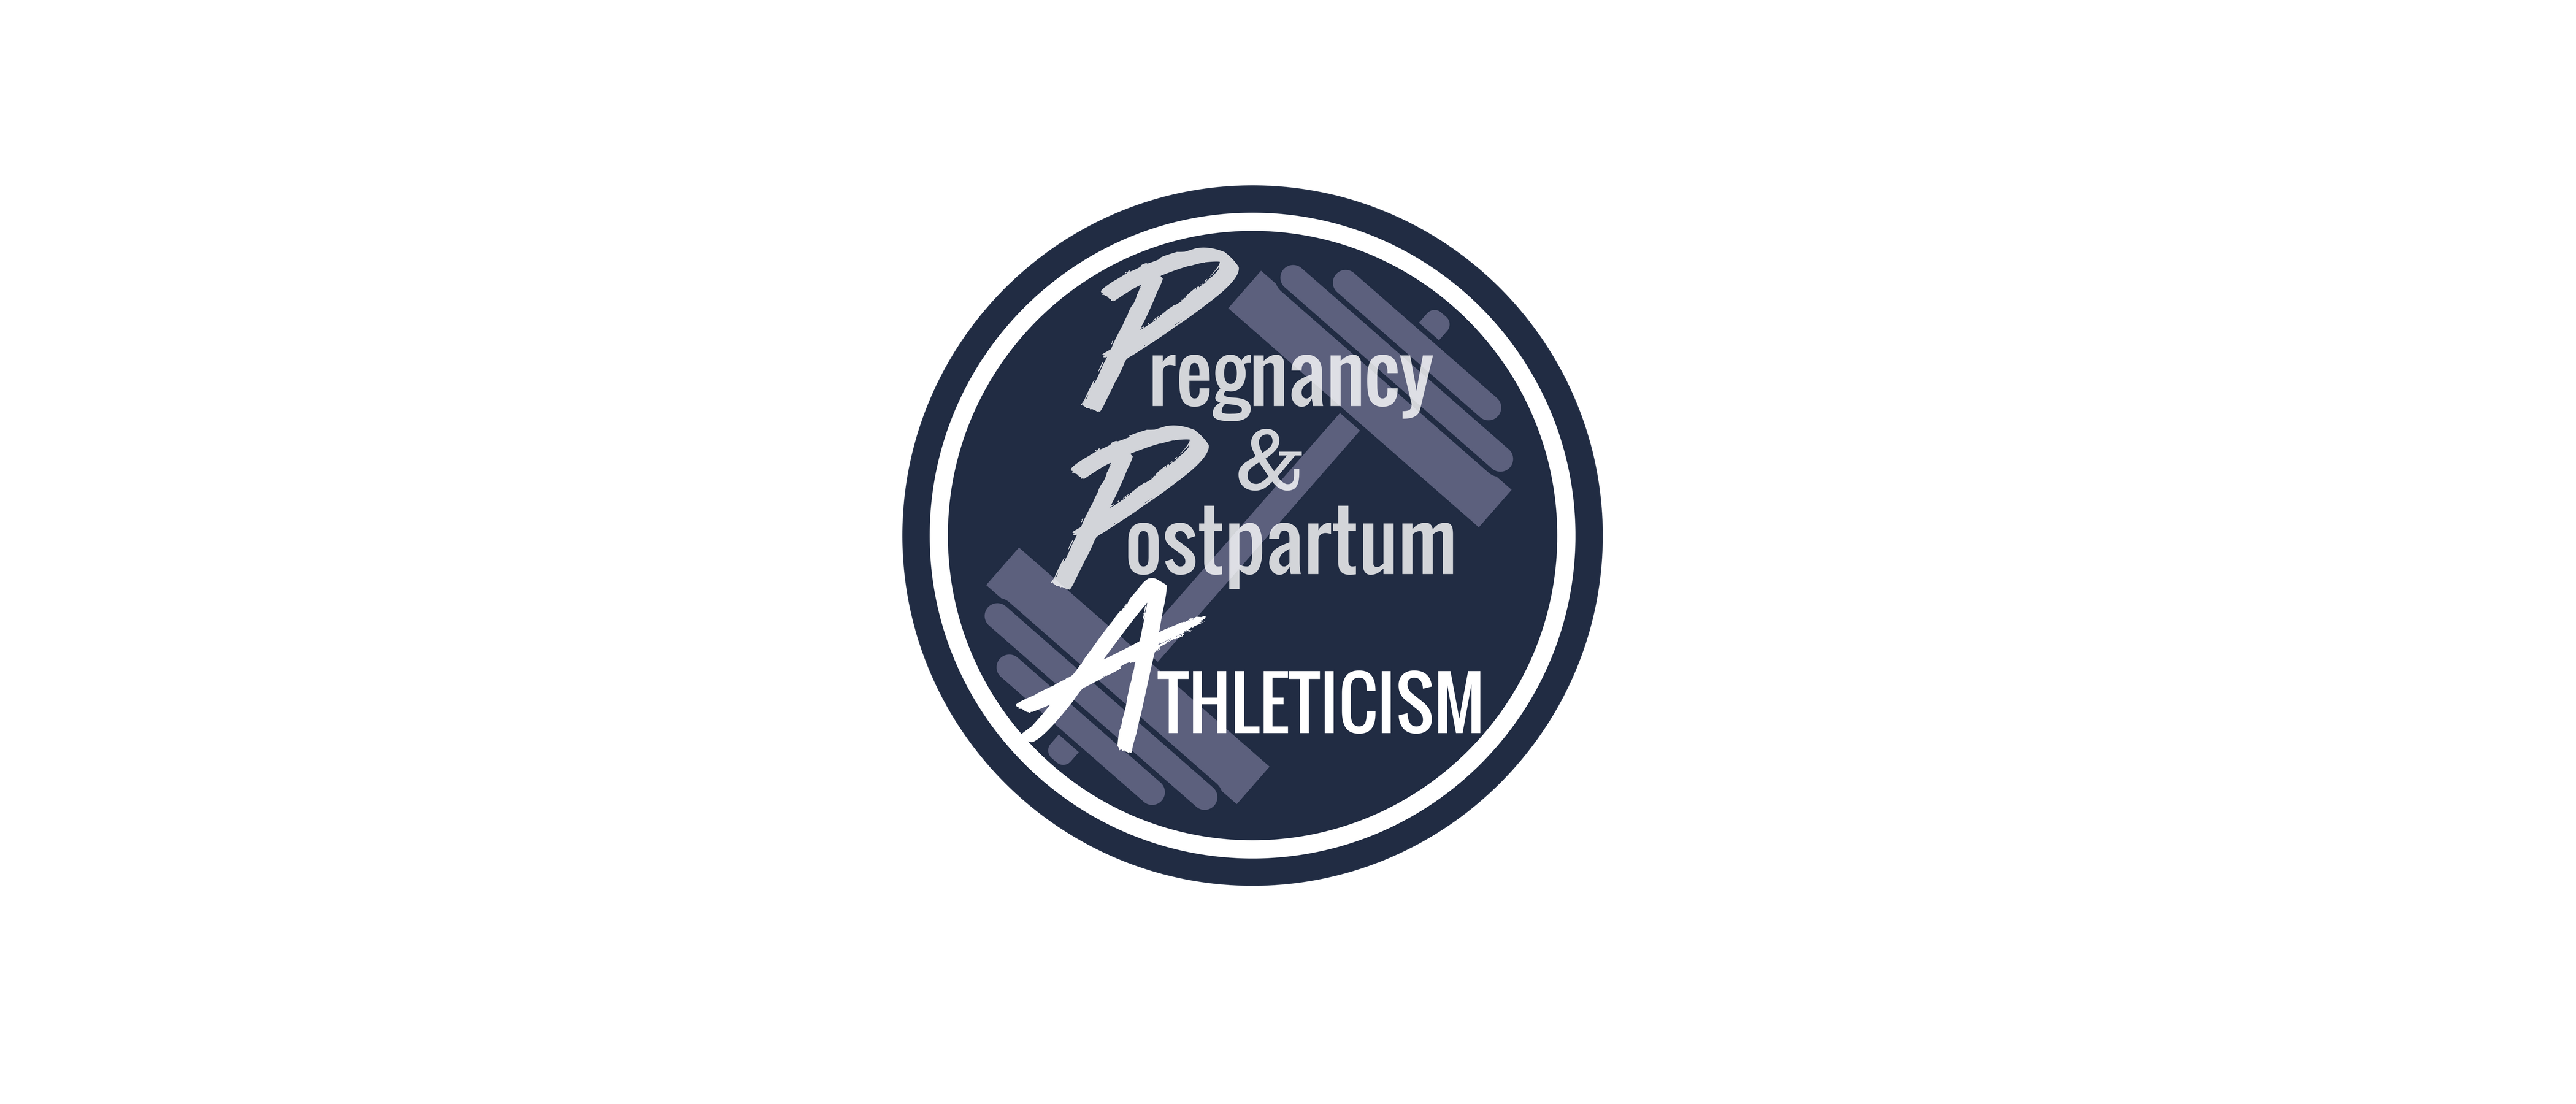 Postpartum – What Should You Watch Sports?